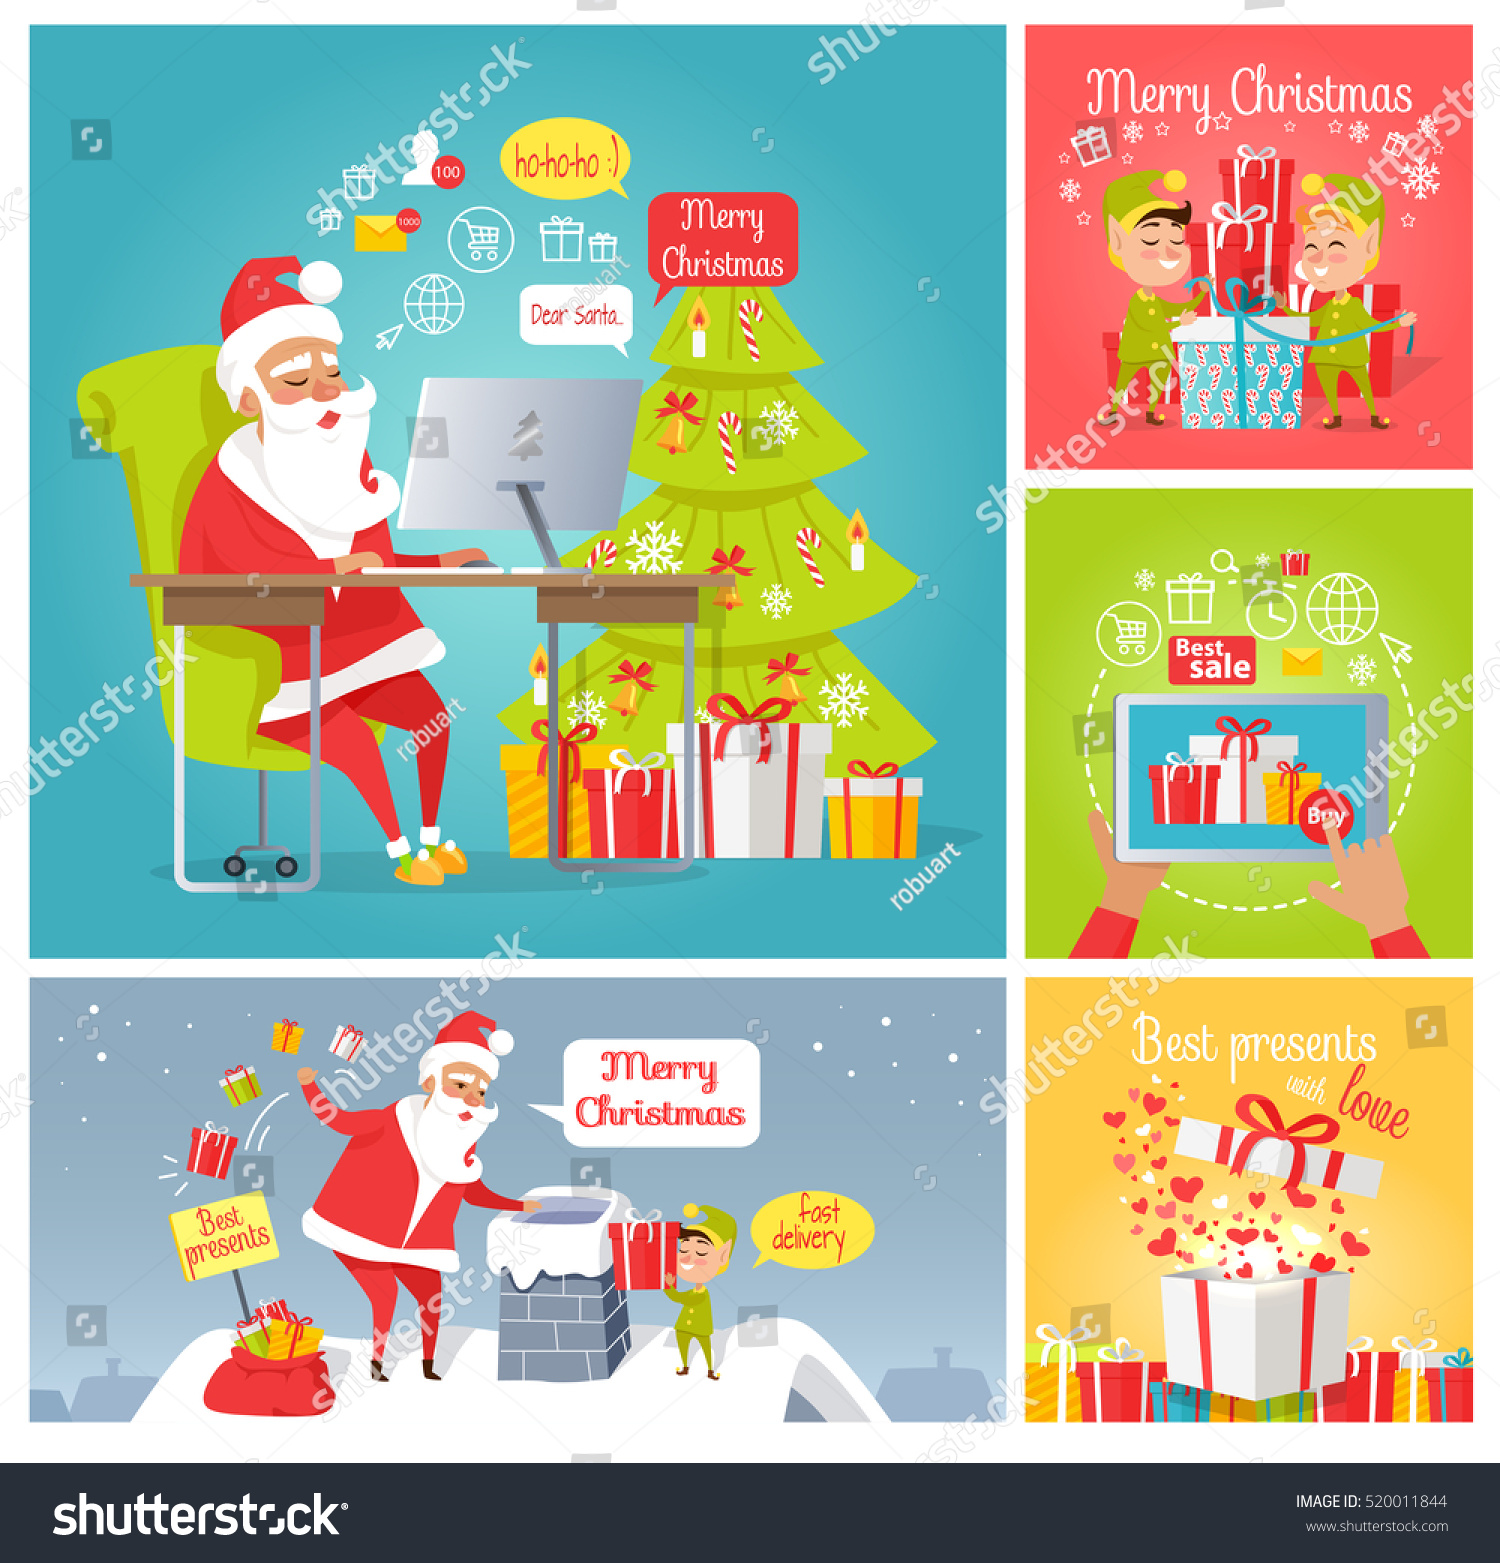 Merry Christmas Dear Santa Fast Delivery Stock Vector (Royalty Free ...